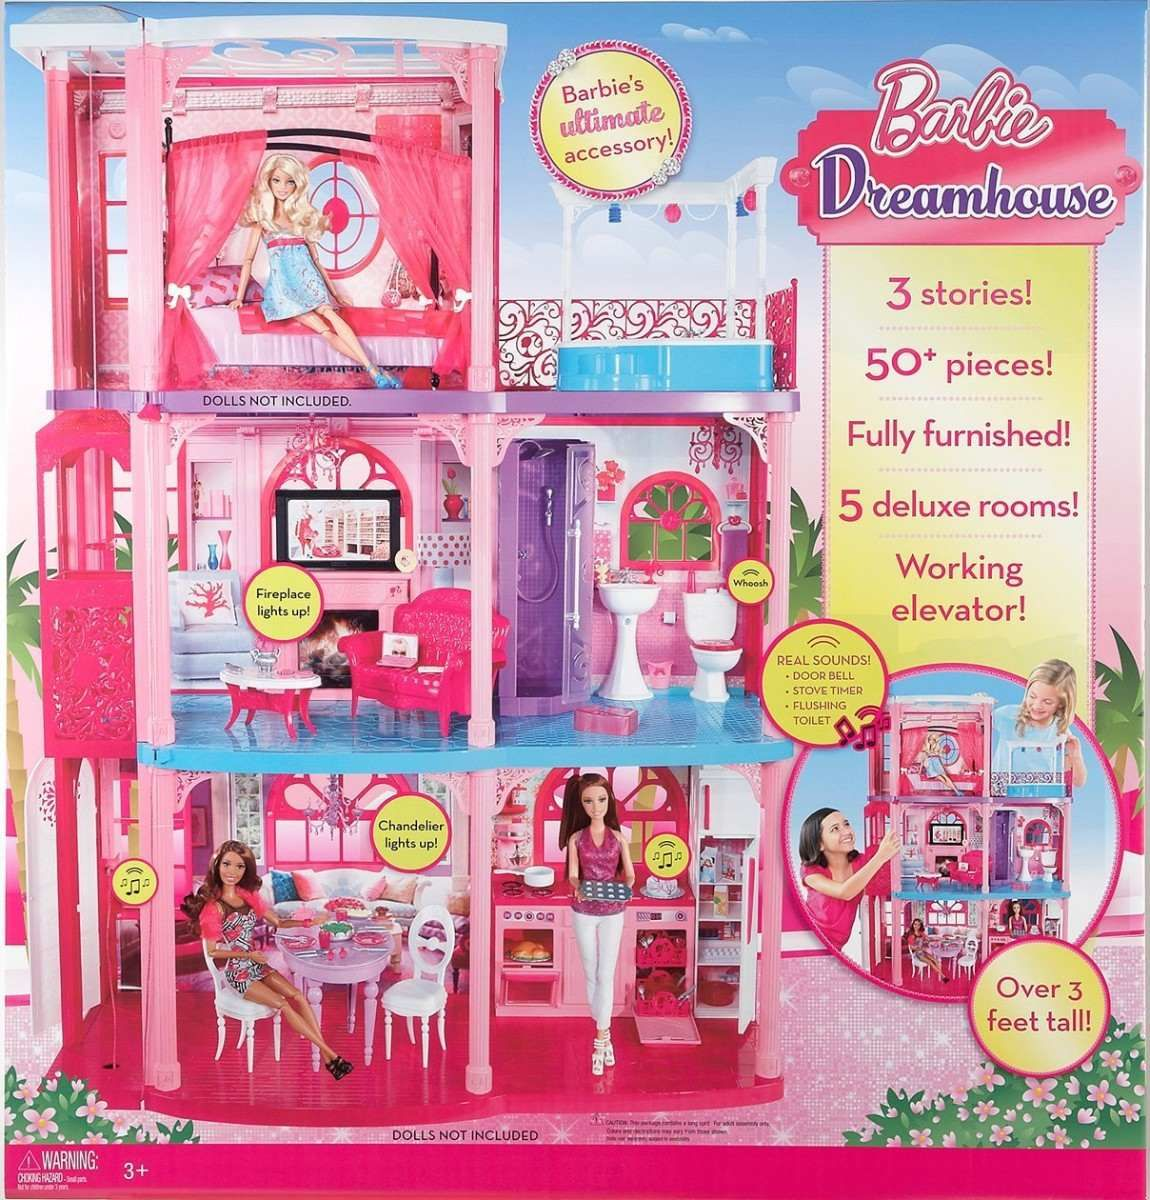 Barbie deluxe furniture stovetop to tabletop kitchen doll target - Casa Barbie De Los Sue Os Fisher Price 3 Niveles Barbie